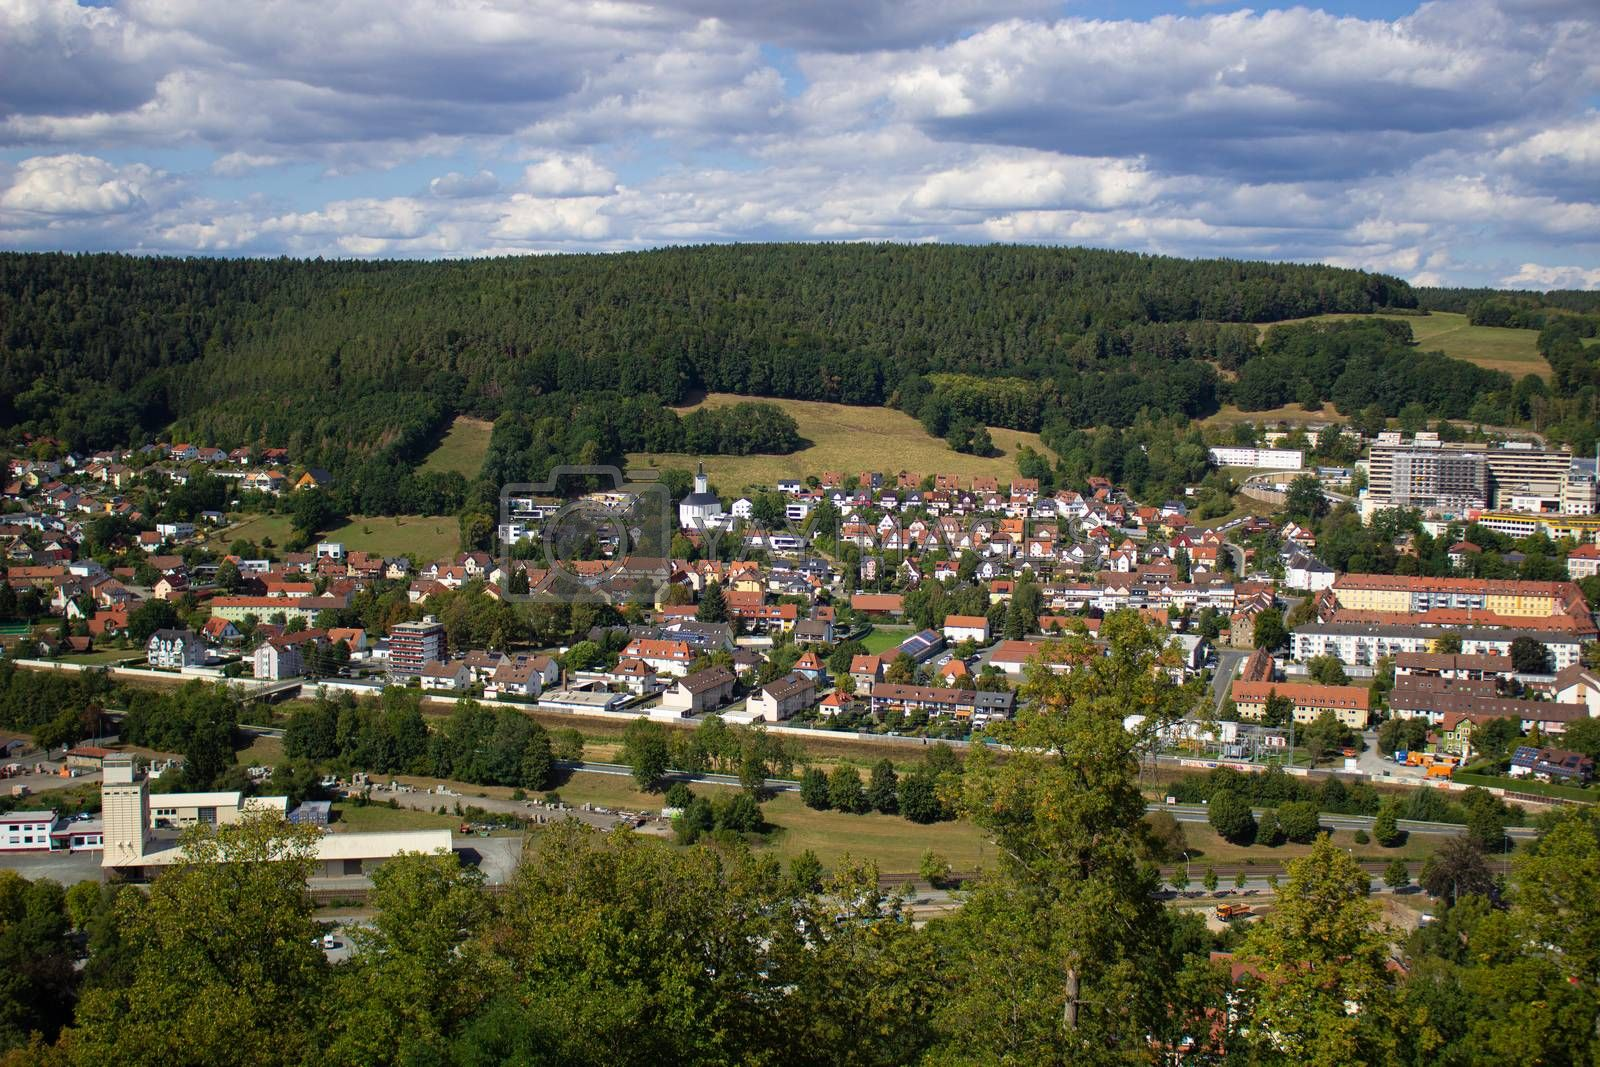 Mountain view of the city, in Germany. Walk through the Castle grounds.